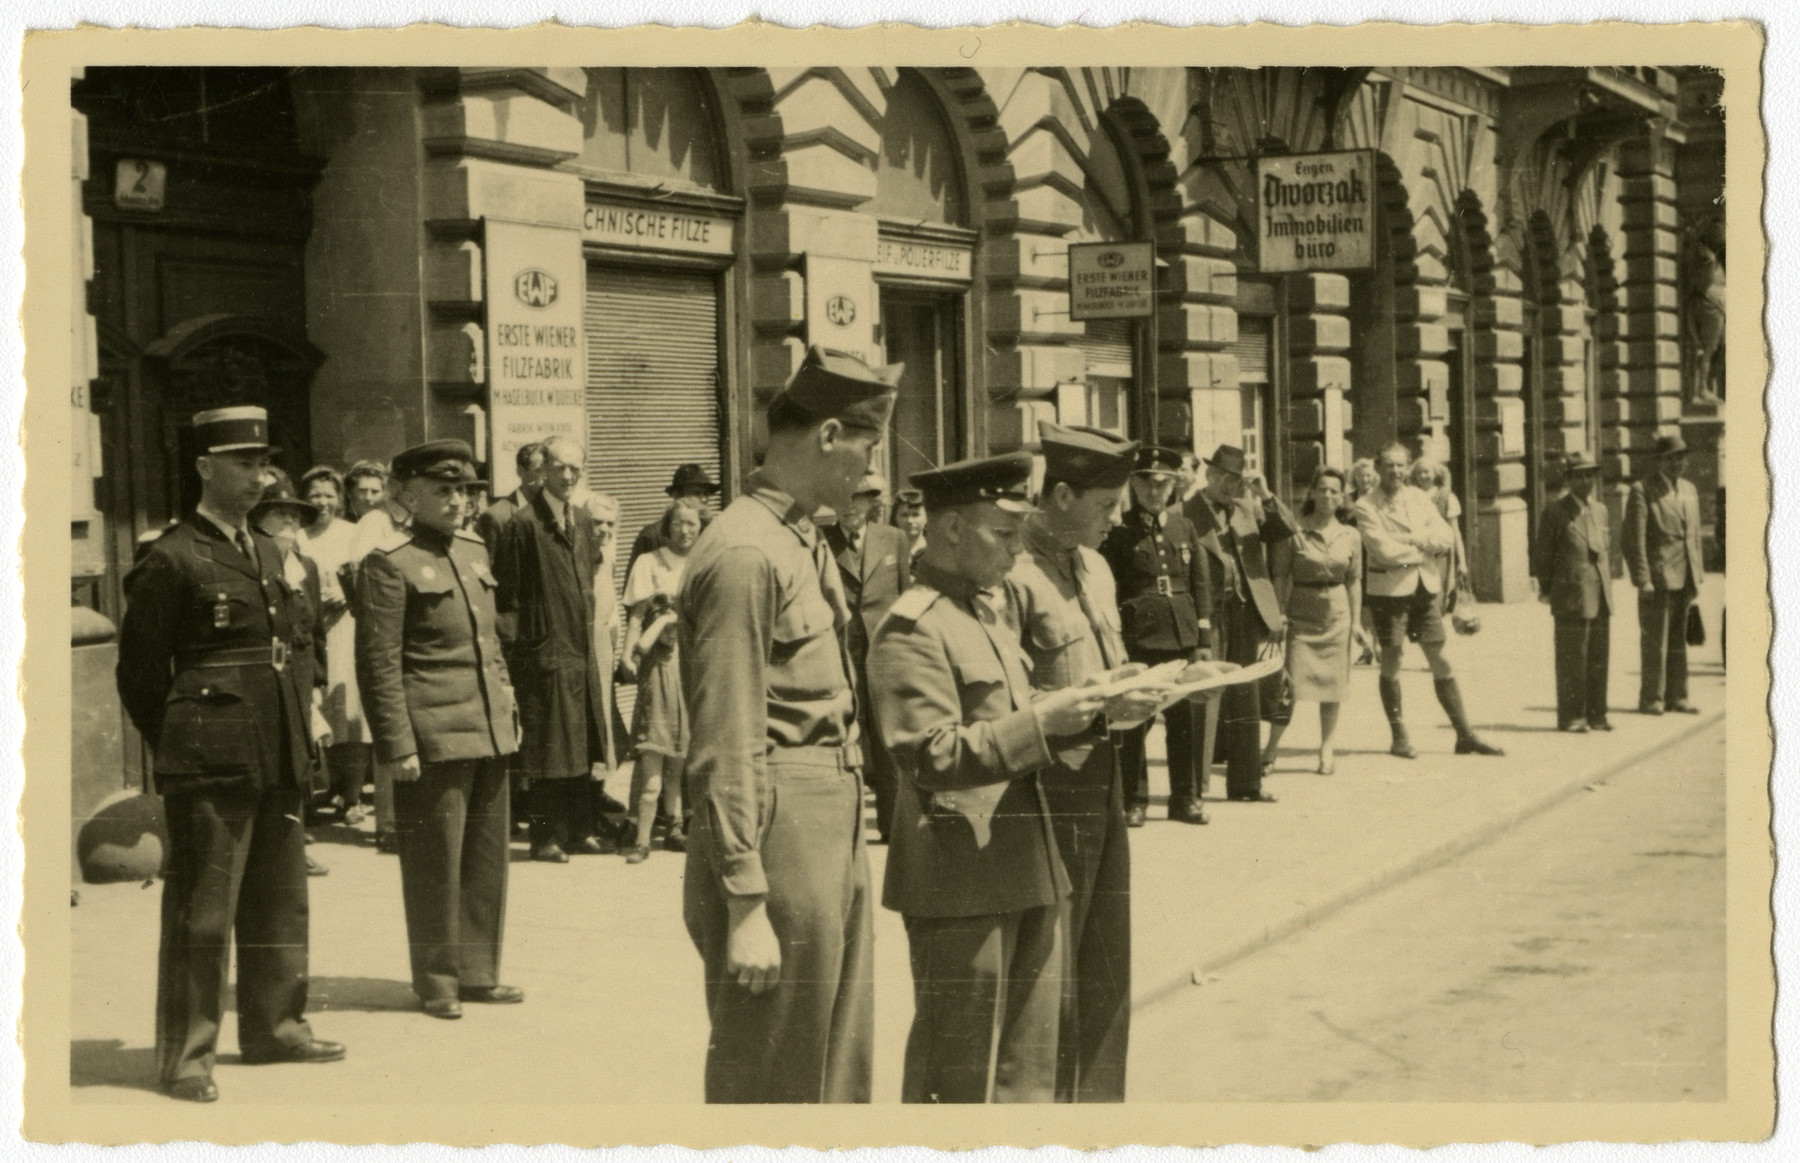 Members of the Four Power International Patrol of Russian, French, British, and American military police gather on a street in Vienna.